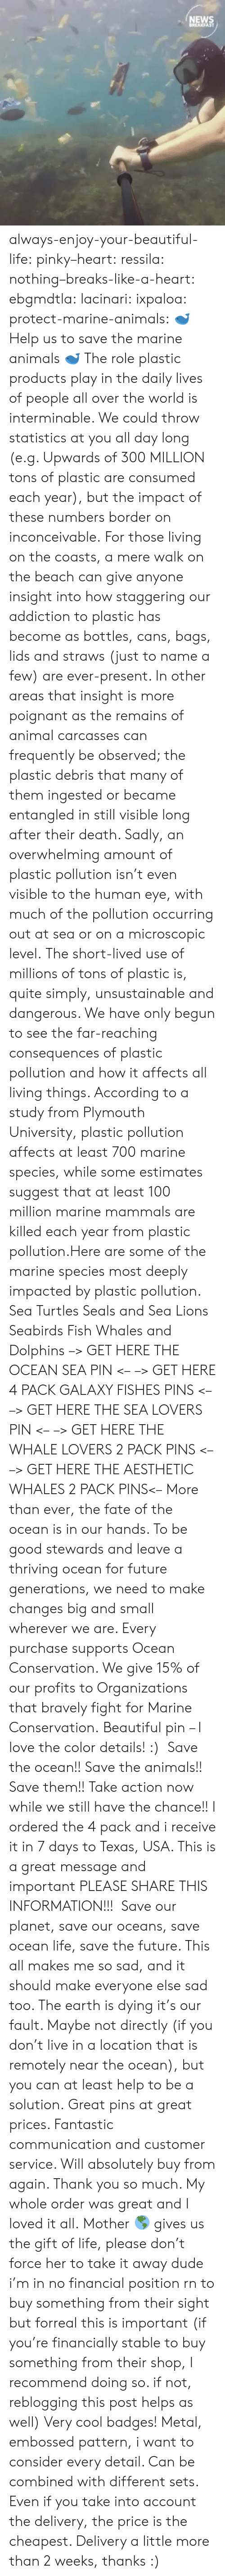 Reaching: NEWS  BREAKFAST always-enjoy-your-beautiful-life:  pinky–heart: ressila:  nothing–breaks-like-a-heart:  ebgmdtla:  lacinari:  ixpaloa:  protect-marine-animals:  ? Help us to save the marine animals ? The role plastic products play in the daily lives of people all over the world is interminable. We could throw statistics at you all day long (e.g. Upwards of 300 MILLION tons of plastic are consumed each year), but the impact of these numbers border on inconceivable. For those living on the coasts, a mere walk on the beach can give anyone insight into how staggering our addiction to plastic has become as bottles, cans, bags, lids and straws (just to name a few) are ever-present. In other areas that insight is more poignant as the remains of animal carcasses can frequently be observed; the plastic debris that many of them ingested or became entangled in still visible long after their death. Sadly, an overwhelming amount of plastic pollution isn't even visible to the human eye, with much of the pollution occurring out at sea or on a microscopic level. The short-lived use of millions of tons of plastic is, quite simply, unsustainable and dangerous. We have only begun to see the far-reaching consequences of plastic pollution and how it affects all living things. According to a study from Plymouth University, plastic pollution affects at least 700 marine species, while some estimates suggest that at least 100 million marine mammals are killed each year from plastic pollution.Here are some of the marine species most deeply impacted by plastic pollution. Sea Turtles Seals and Sea Lions Seabirds Fish Whales and Dolphins –> GET HERE THE OCEAN SEA PIN <– –> GET HERE 4 PACK GALAXY FISHES PINS <– –> GET HERE THE SEA LOVERS PIN <– –> GET HERE THE WHALE LOVERS 2 PACK PINS <– –> GET HERE THE AESTHETIC WHALES 2 PACK PINS<– More than ever, the fate of the ocean is in our hands. To be good stewards and leave a thriving ocean for future generations, we need to make changes big and small wherever we are. Every purchase supports Ocean Conservation. We give 15% of our profits to Organizations that bravely fight for Marine Conservation.  Beautiful pin – I love the color details! :)   Save the ocean!! Save the animals!! Save them!! Take action now while we still have the chance!!  I ordered the 4 pack and i receive it in 7 days to Texas, USA. This is a great message and important PLEASE SHARE THIS INFORMATION!!!   Save our planet, save our oceans, save ocean life, save the future. This all makes me so sad, and it should make everyone else sad too. The earth is dying it's our fault. Maybe not directly (if you don't live in a location that is remotely near the ocean), but you can at least help to be a solution.  Great pins at great prices. Fantastic communication and customer service. Will absolutely buy from again. Thank you so much. My whole order was great and I loved it all. Mother ? gives us the gift of life, please don't force her to take it away  dude i'm in no financial position rn to buy something from their sight but forreal this is important (if you're financially stable to buy something from their shop, I recommend doing so. if not, reblogging this post helps as well)  Very cool badges! Metal, embossed pattern, i want to consider every detail. Can be combined with different sets. Even if you take into account the delivery, the price is the cheapest. Delivery a little more than 2 weeks, thanks :)